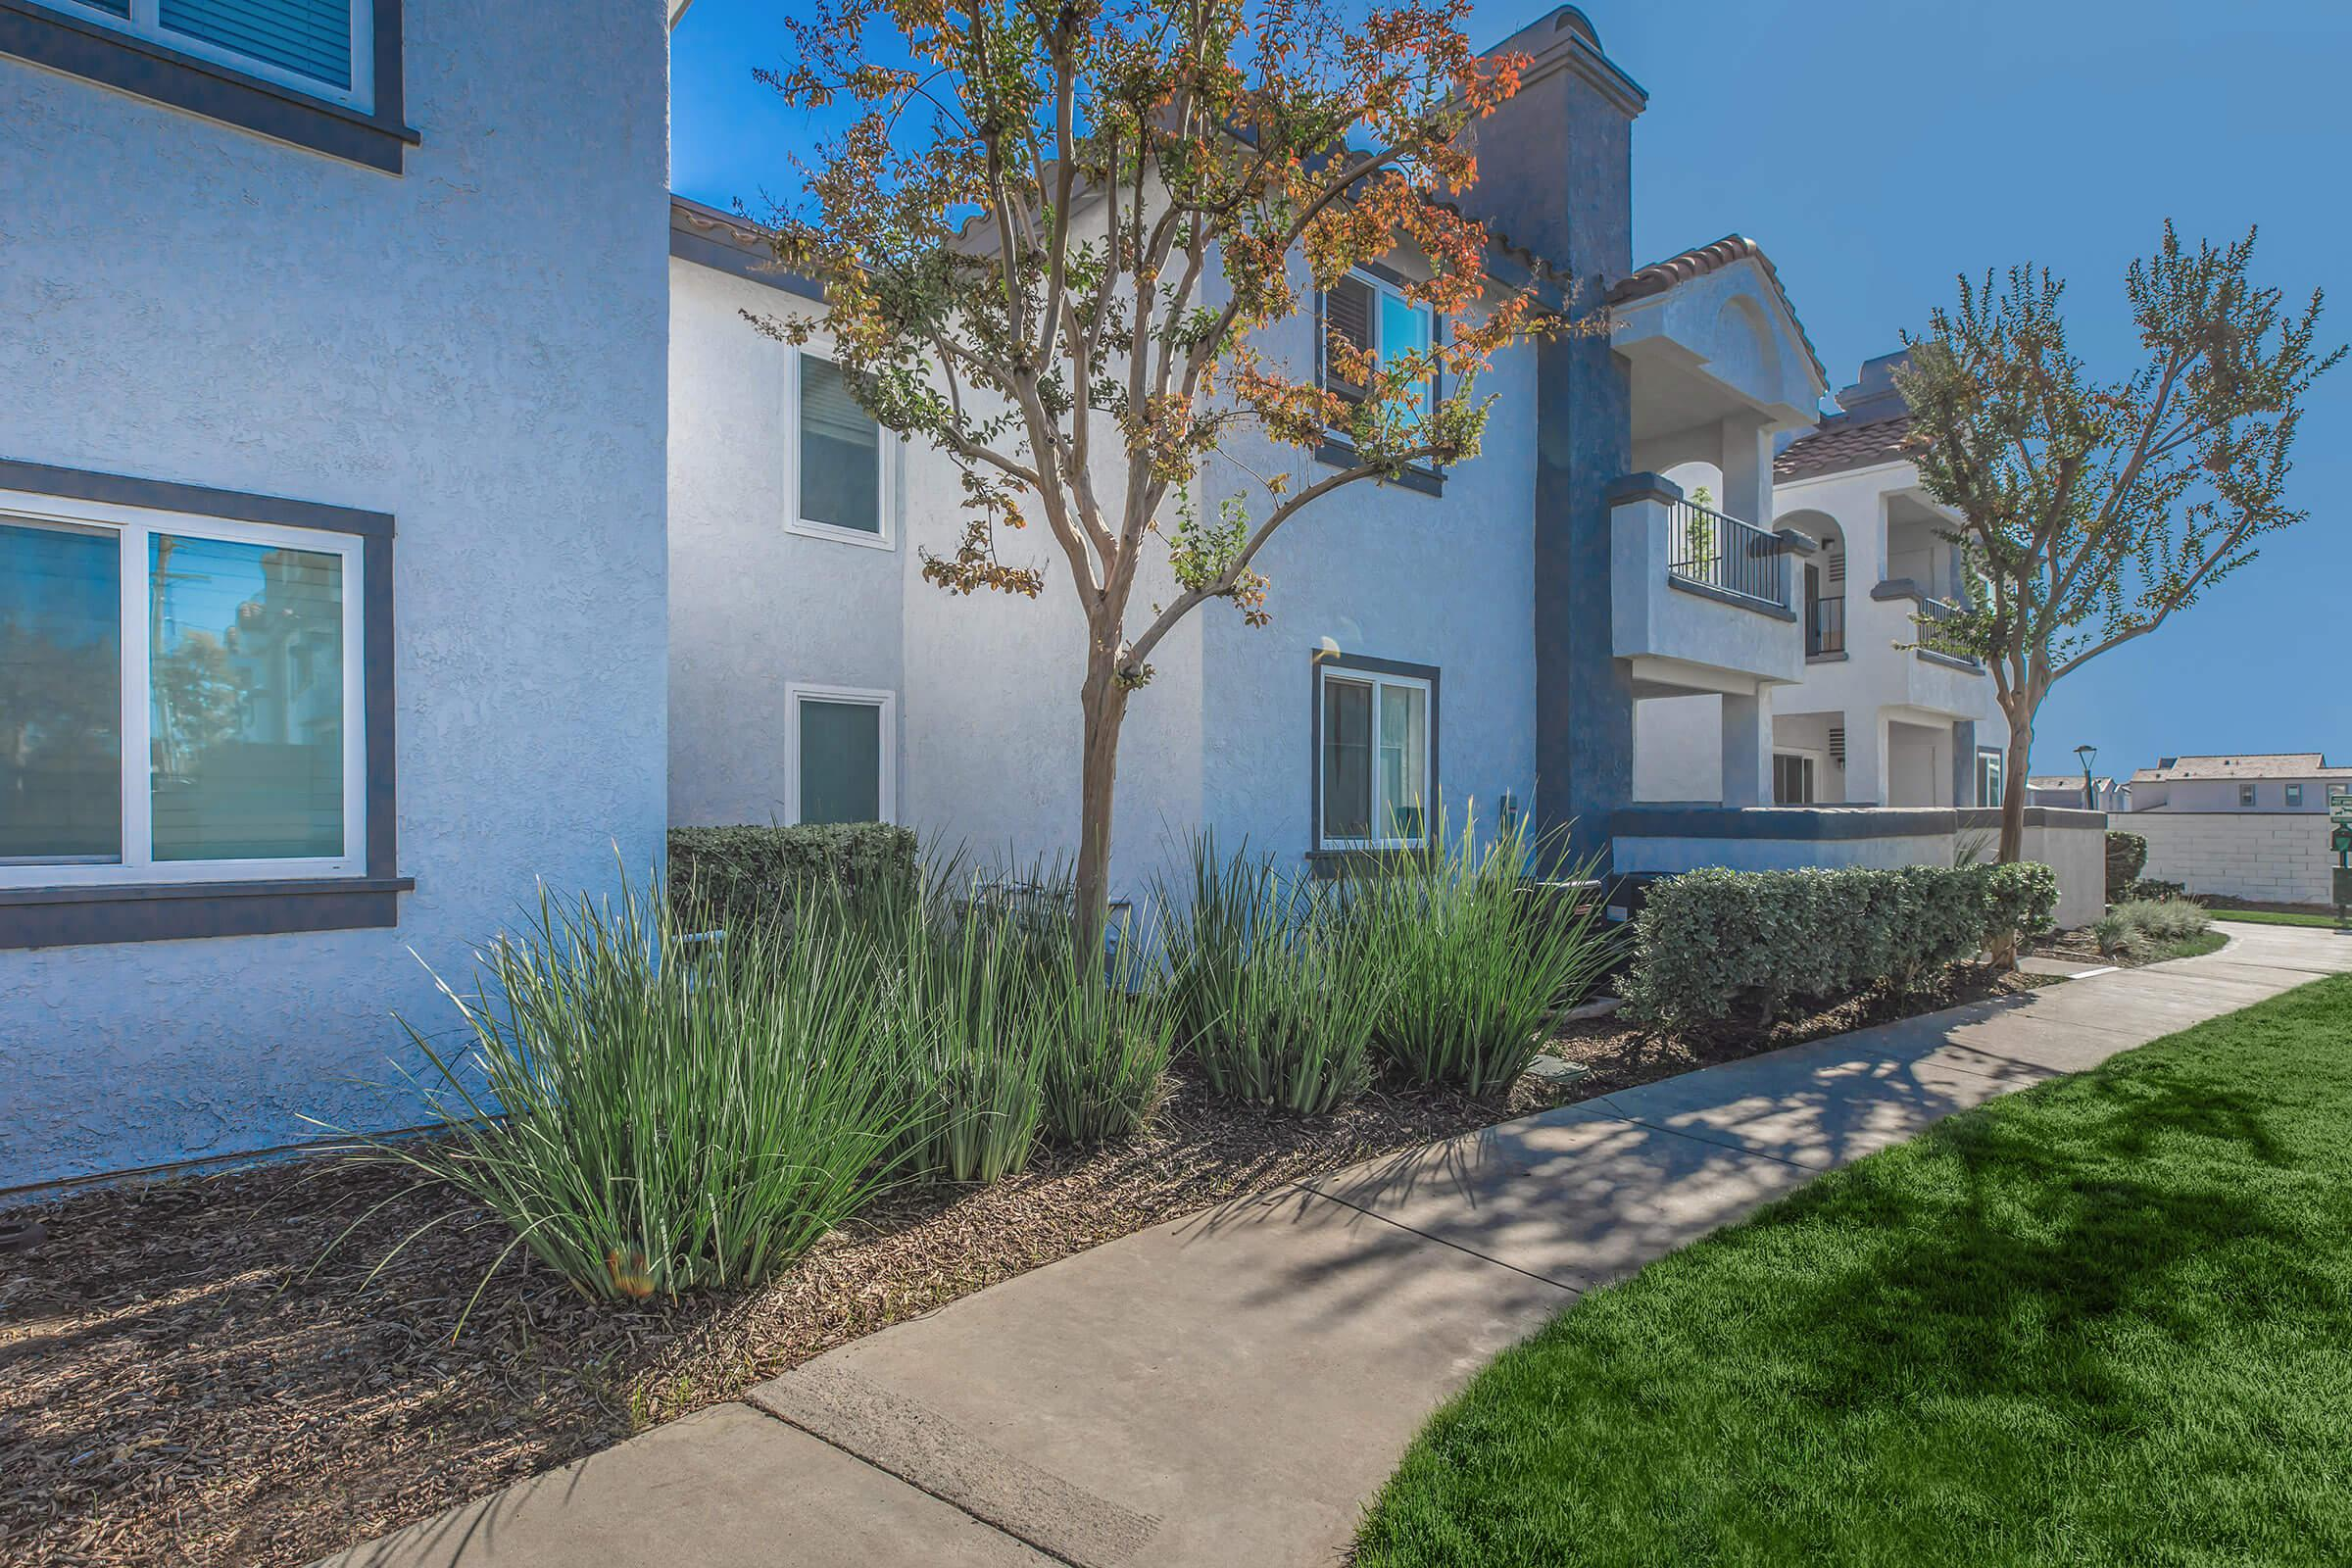 Landscaping at Enclave at Town Square Apartments in Chino, CA